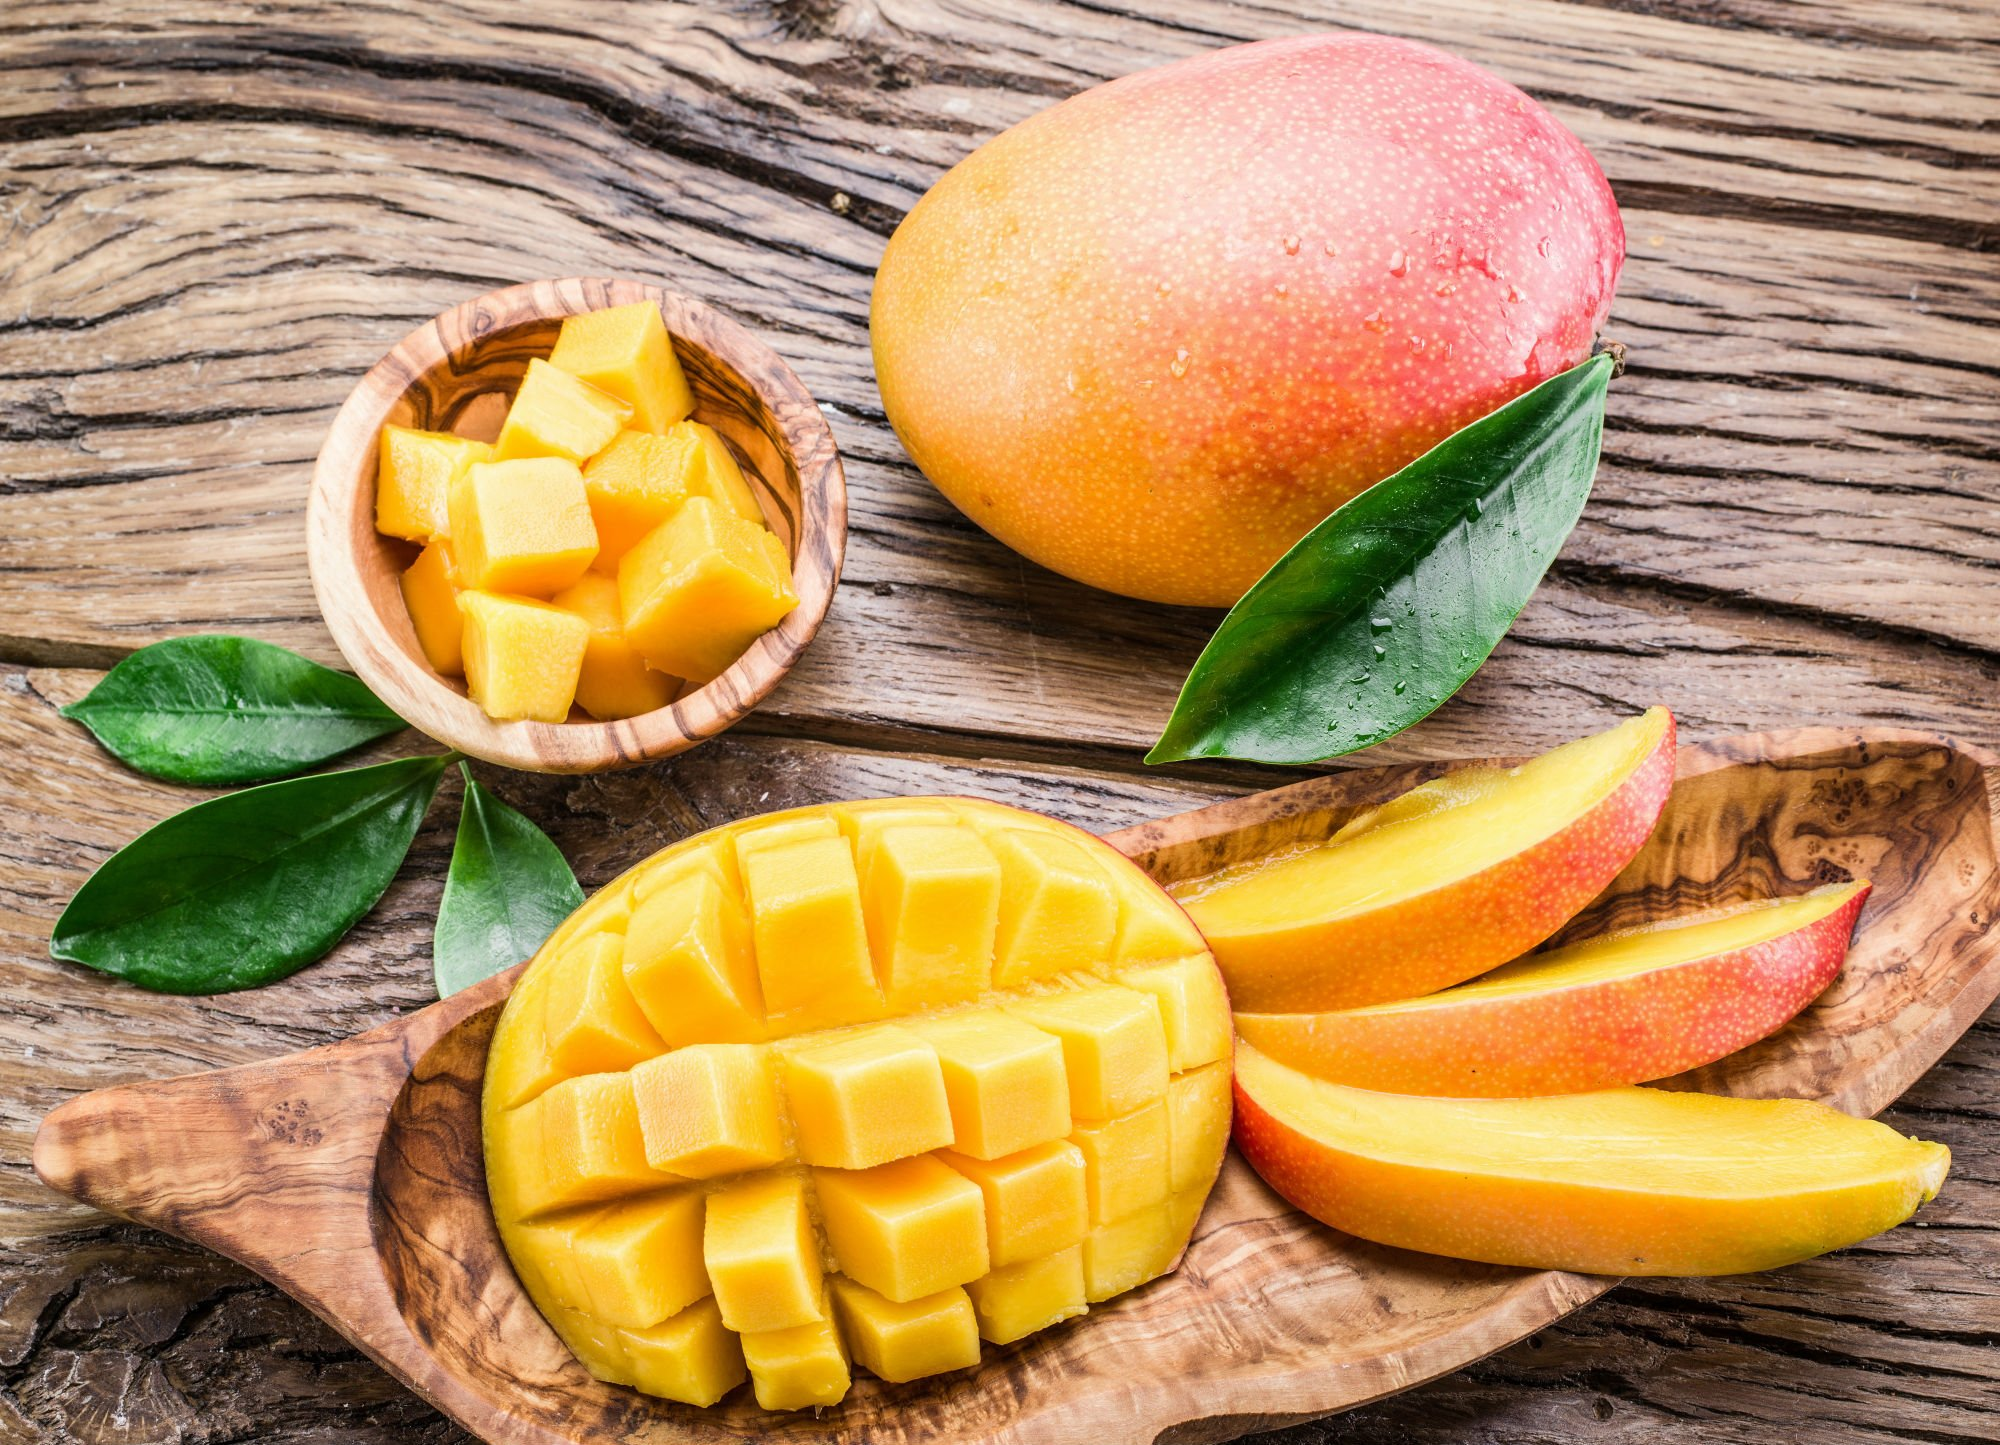 5 REASONS TO EAT ONE MANGO EVERY DAY